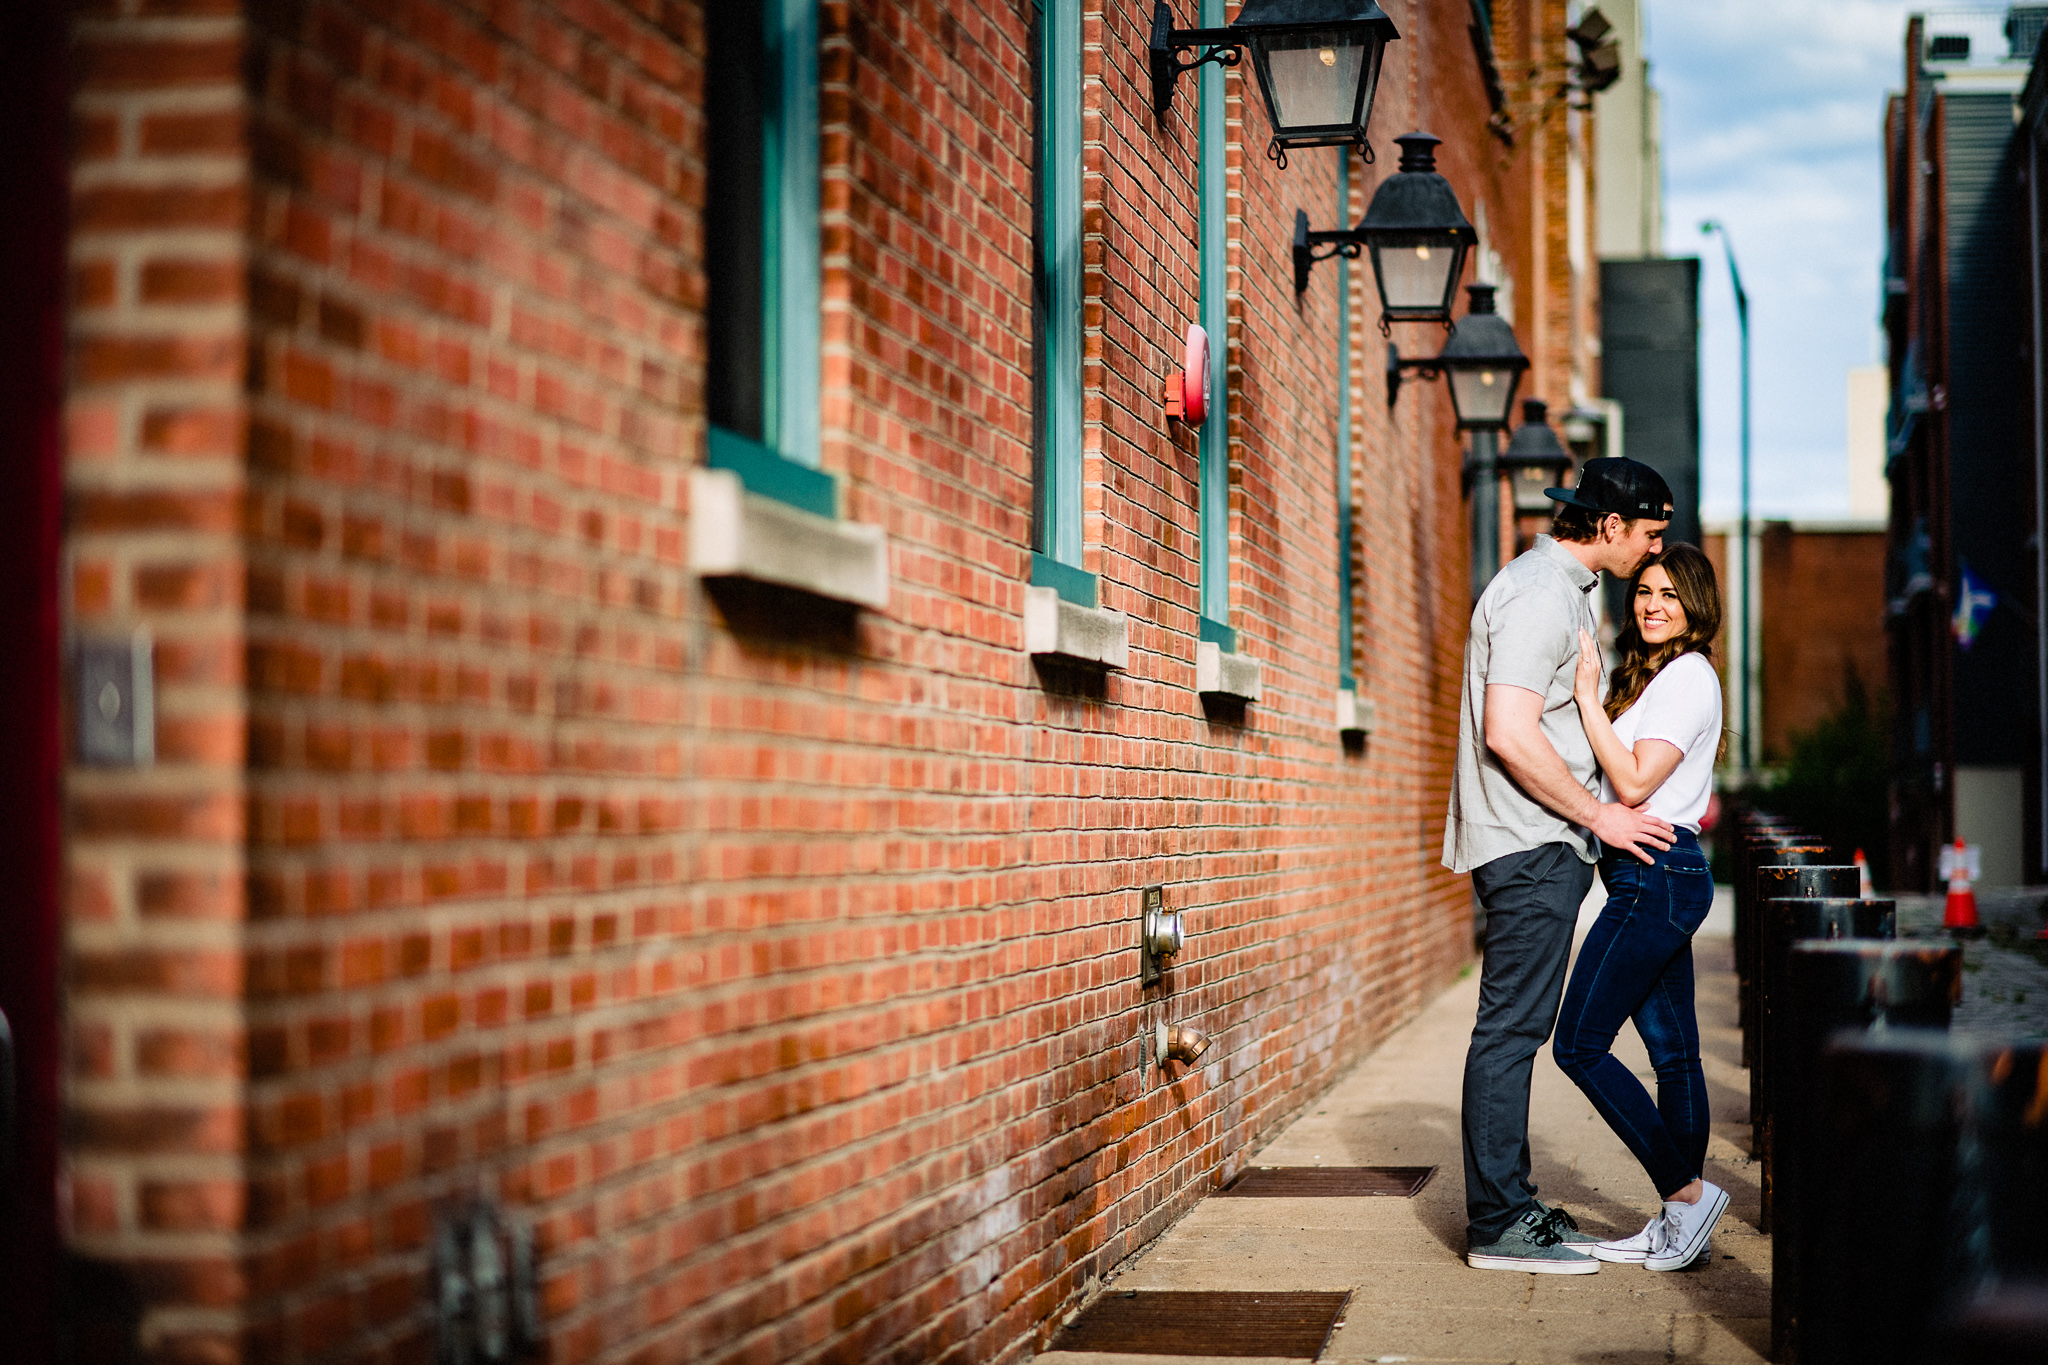 Philadelphia Old City Broad Street Engagement Photography-2019 -04-22-17-59-852_7583-Edit.jpg